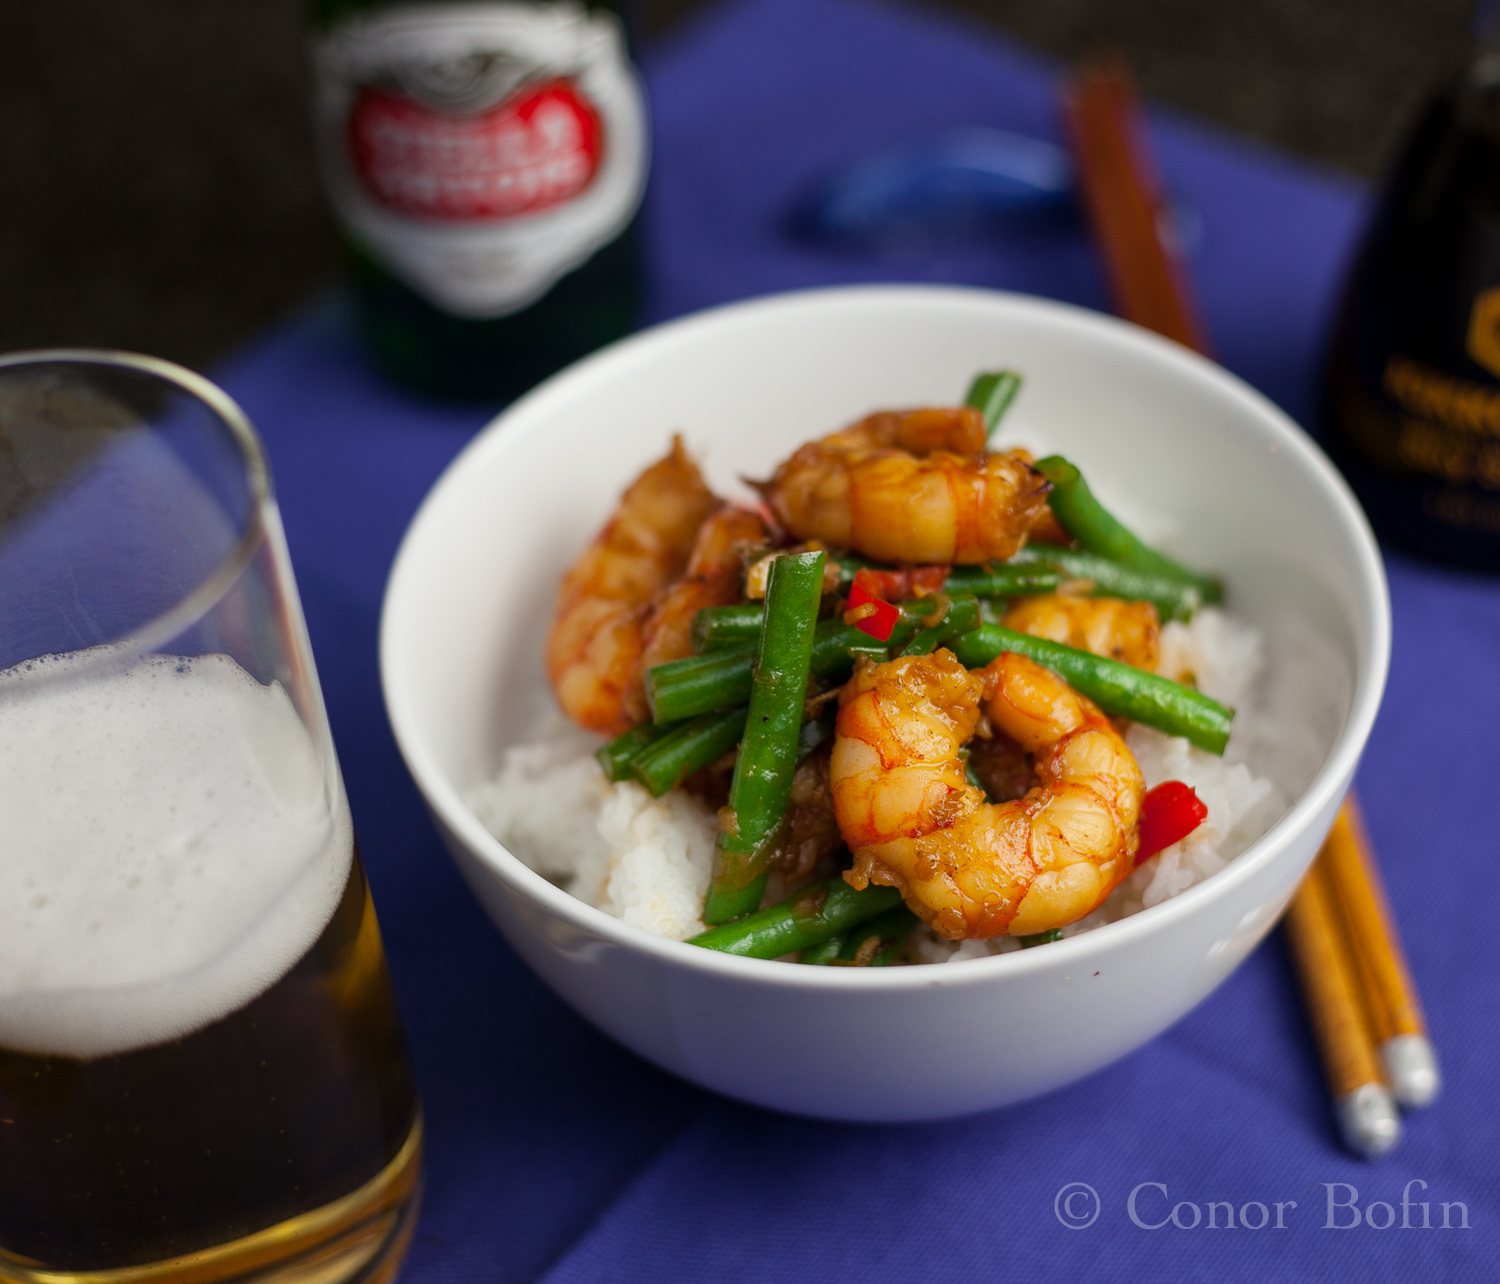 Easy oriental part 9 – Prawns with honey, chili and green beans even though you don't deserve it.